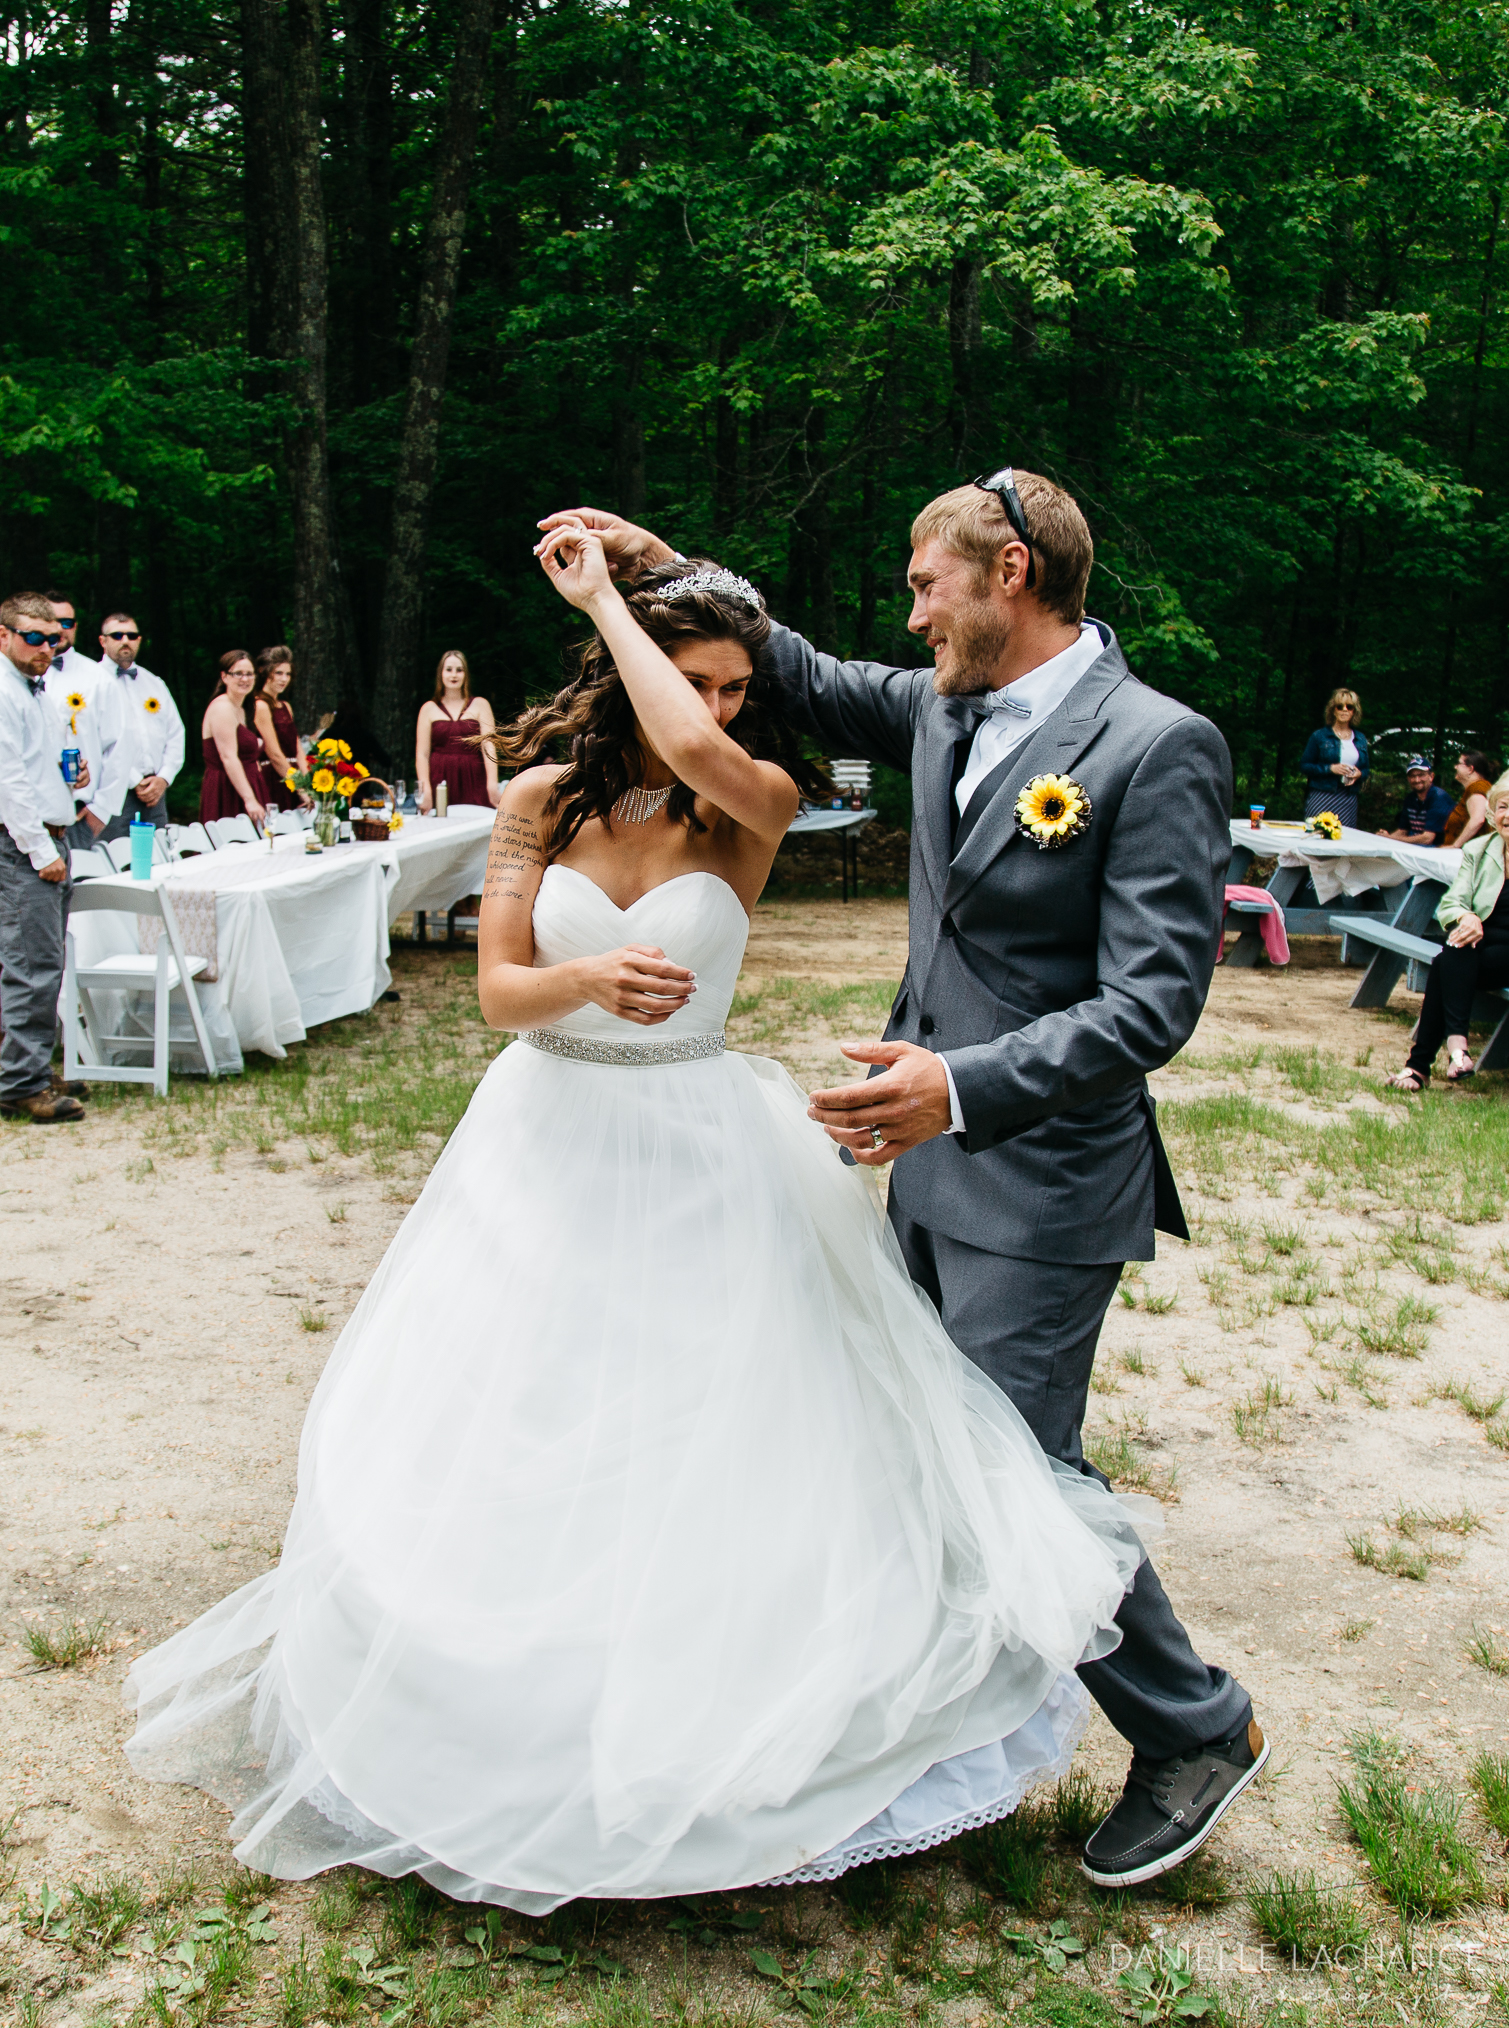 southern-maine-outdoor-rustic-casual-wedding-photographer-first-dance-bride-groom-portland-gorham-kennebunk-buxton-biddeford-saco.jpg